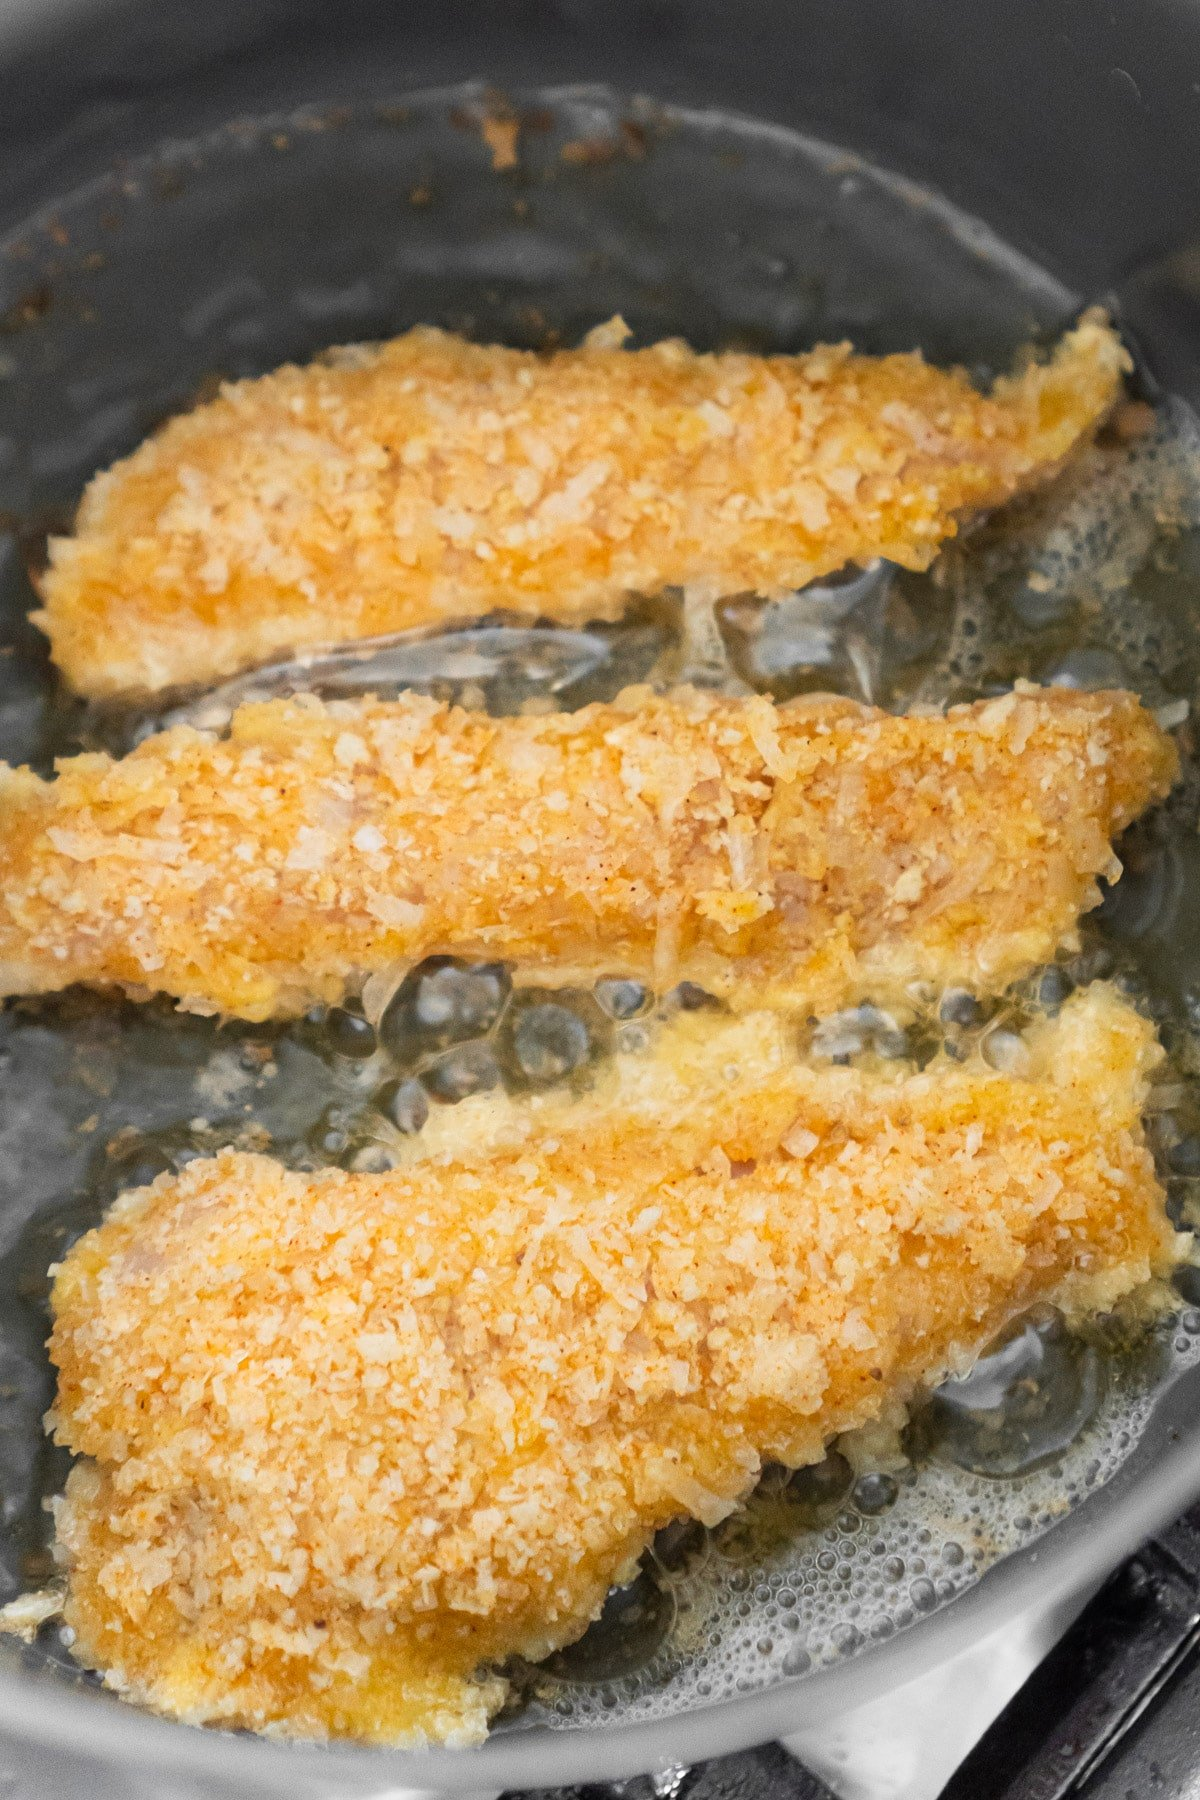 Coconut chicken tenders in coconut oil pan frying